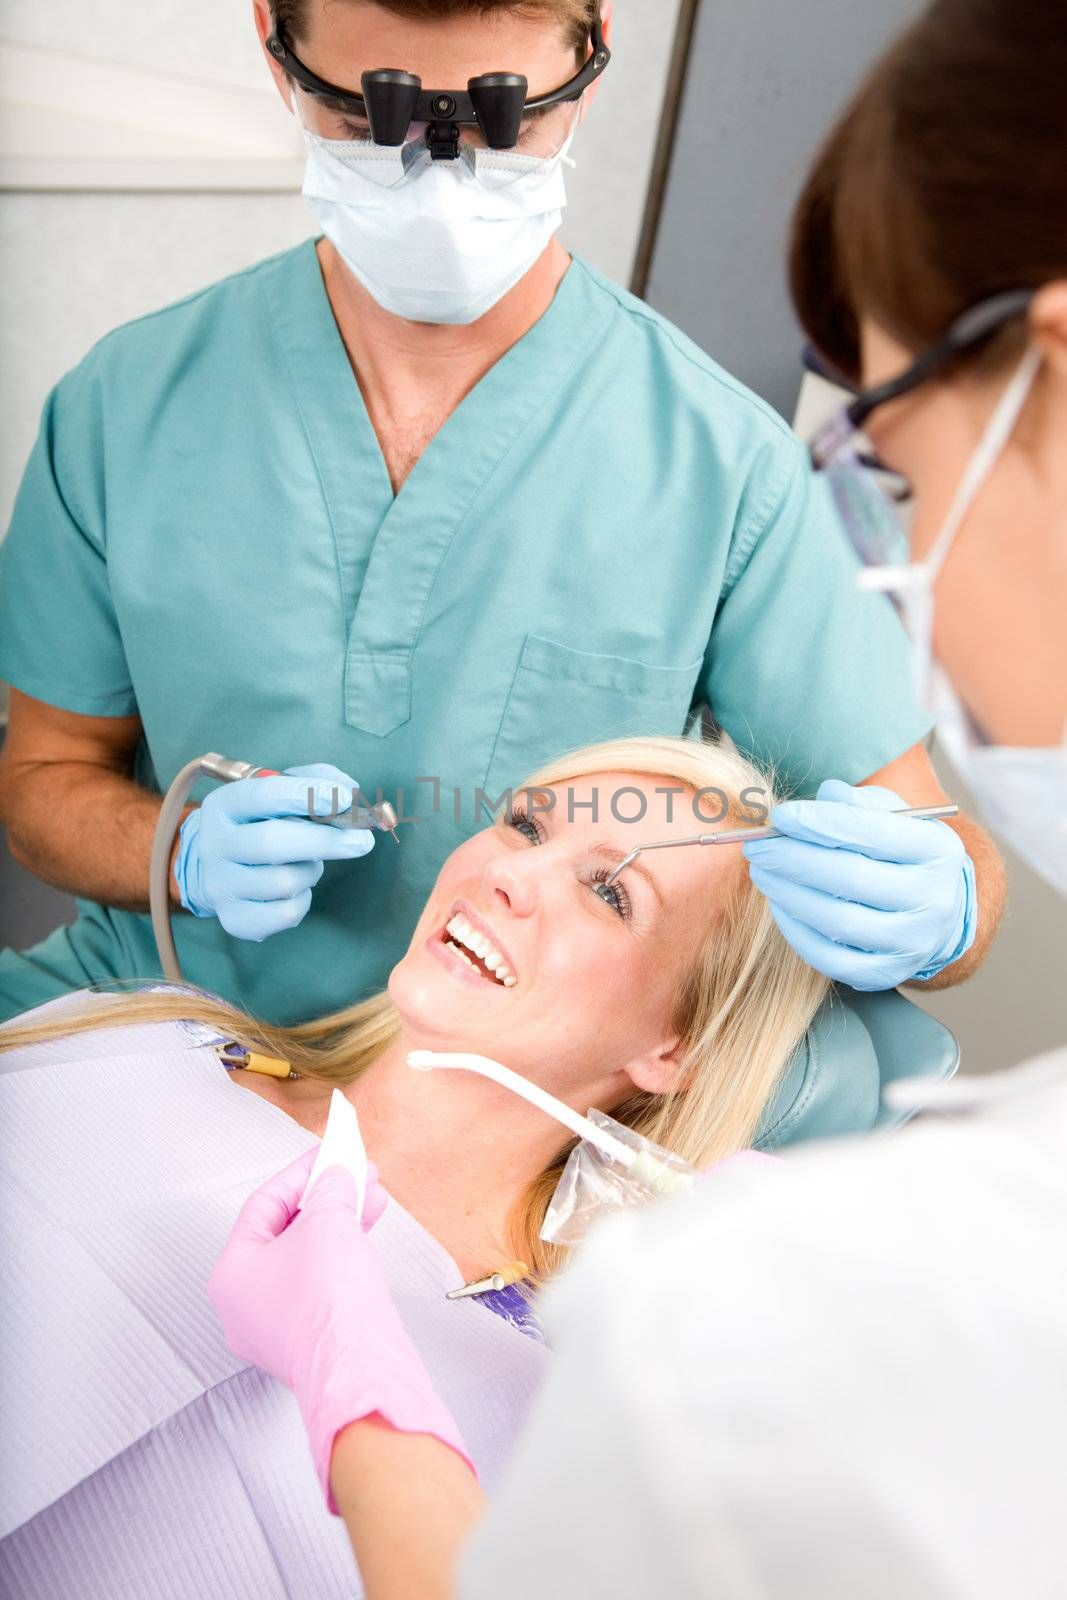 A woman at the dentist about to have some drilling done